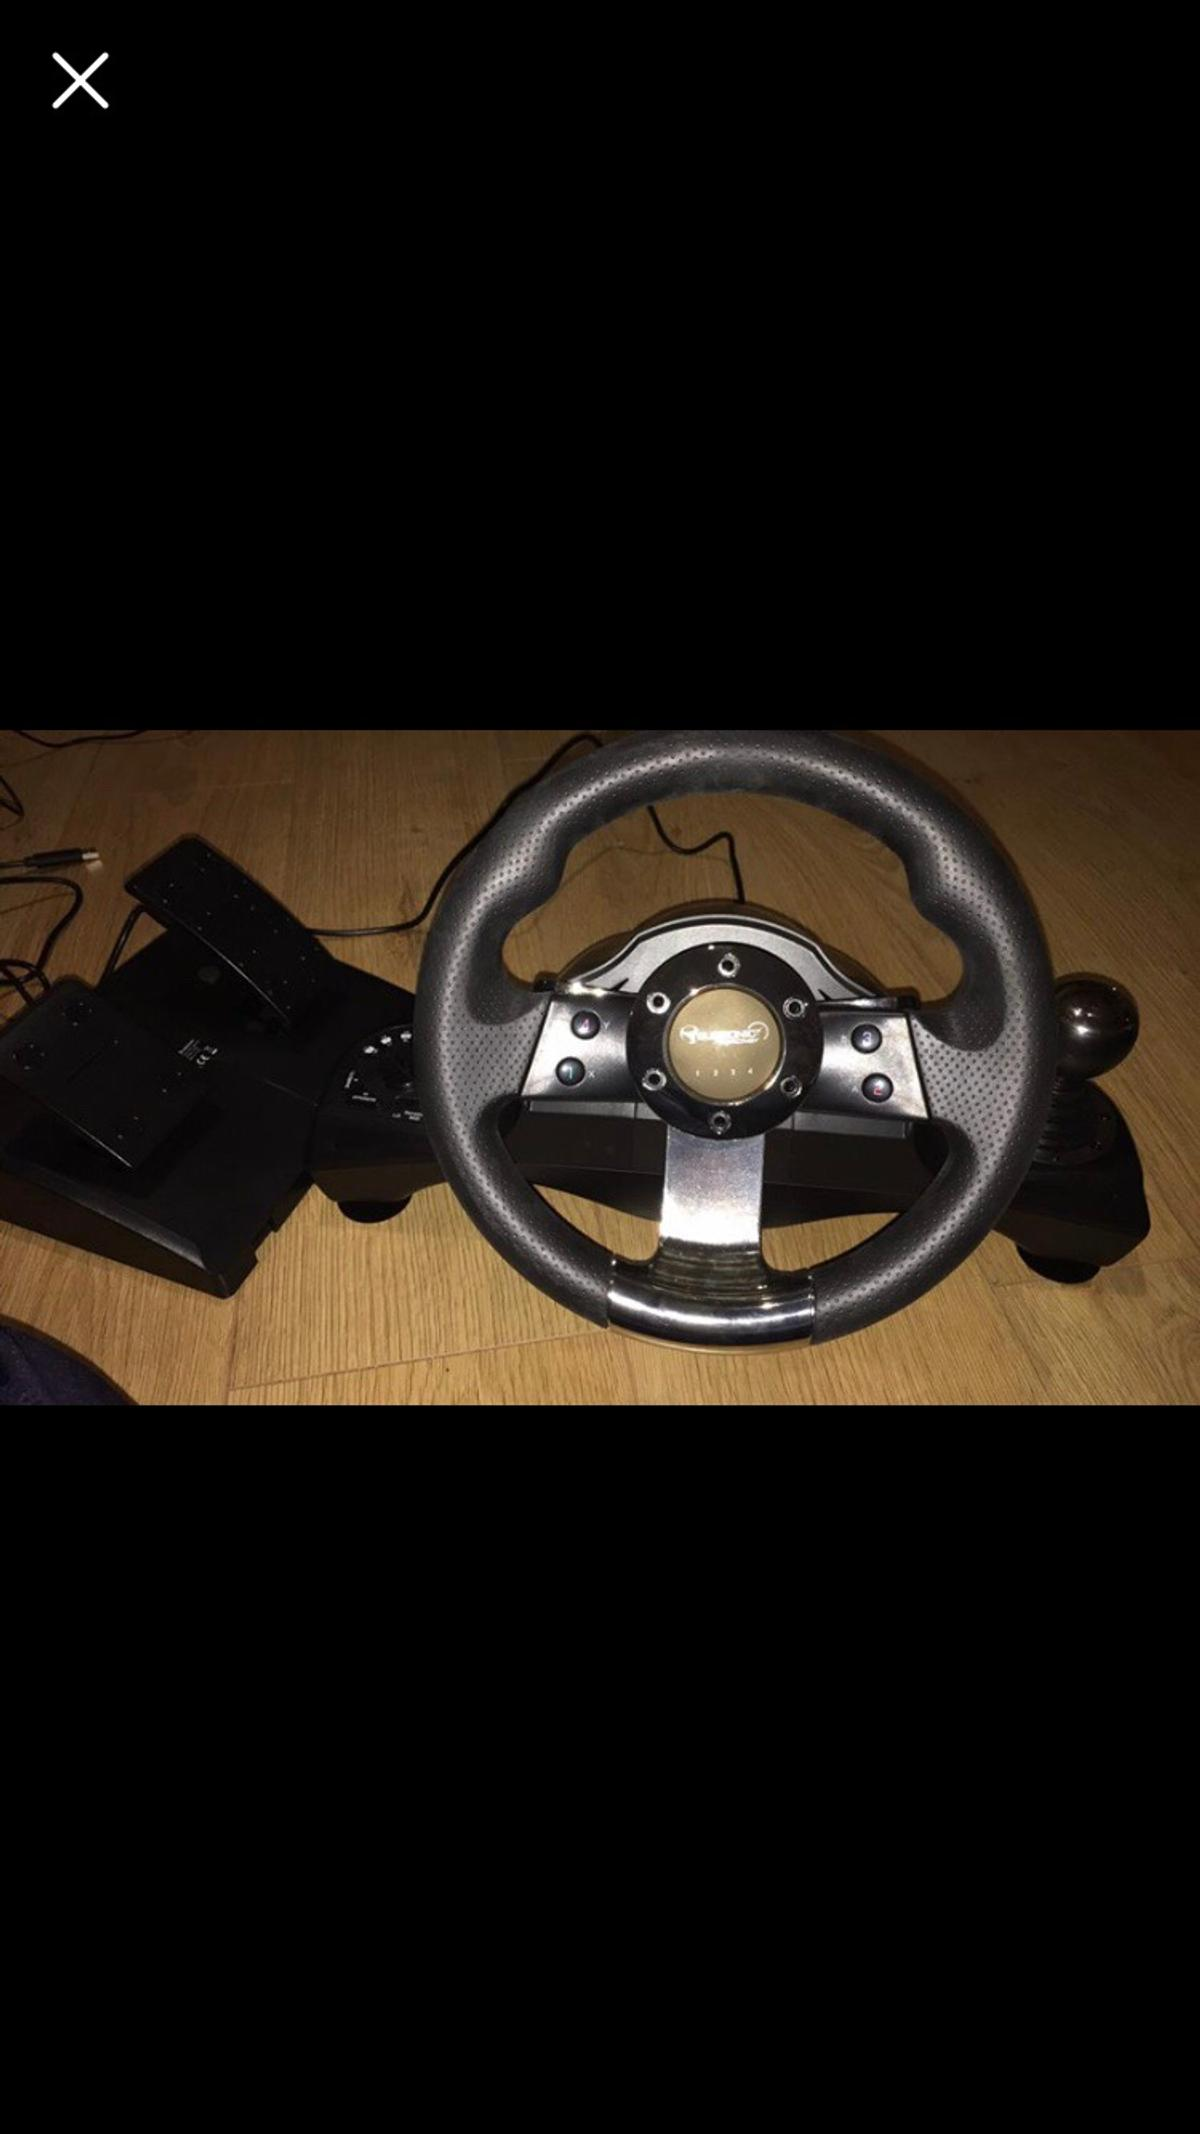 353b4a71b58 Drive steering wheel Xbox one PS4 ps3 in NE6 Tyne for £40.00 for ...